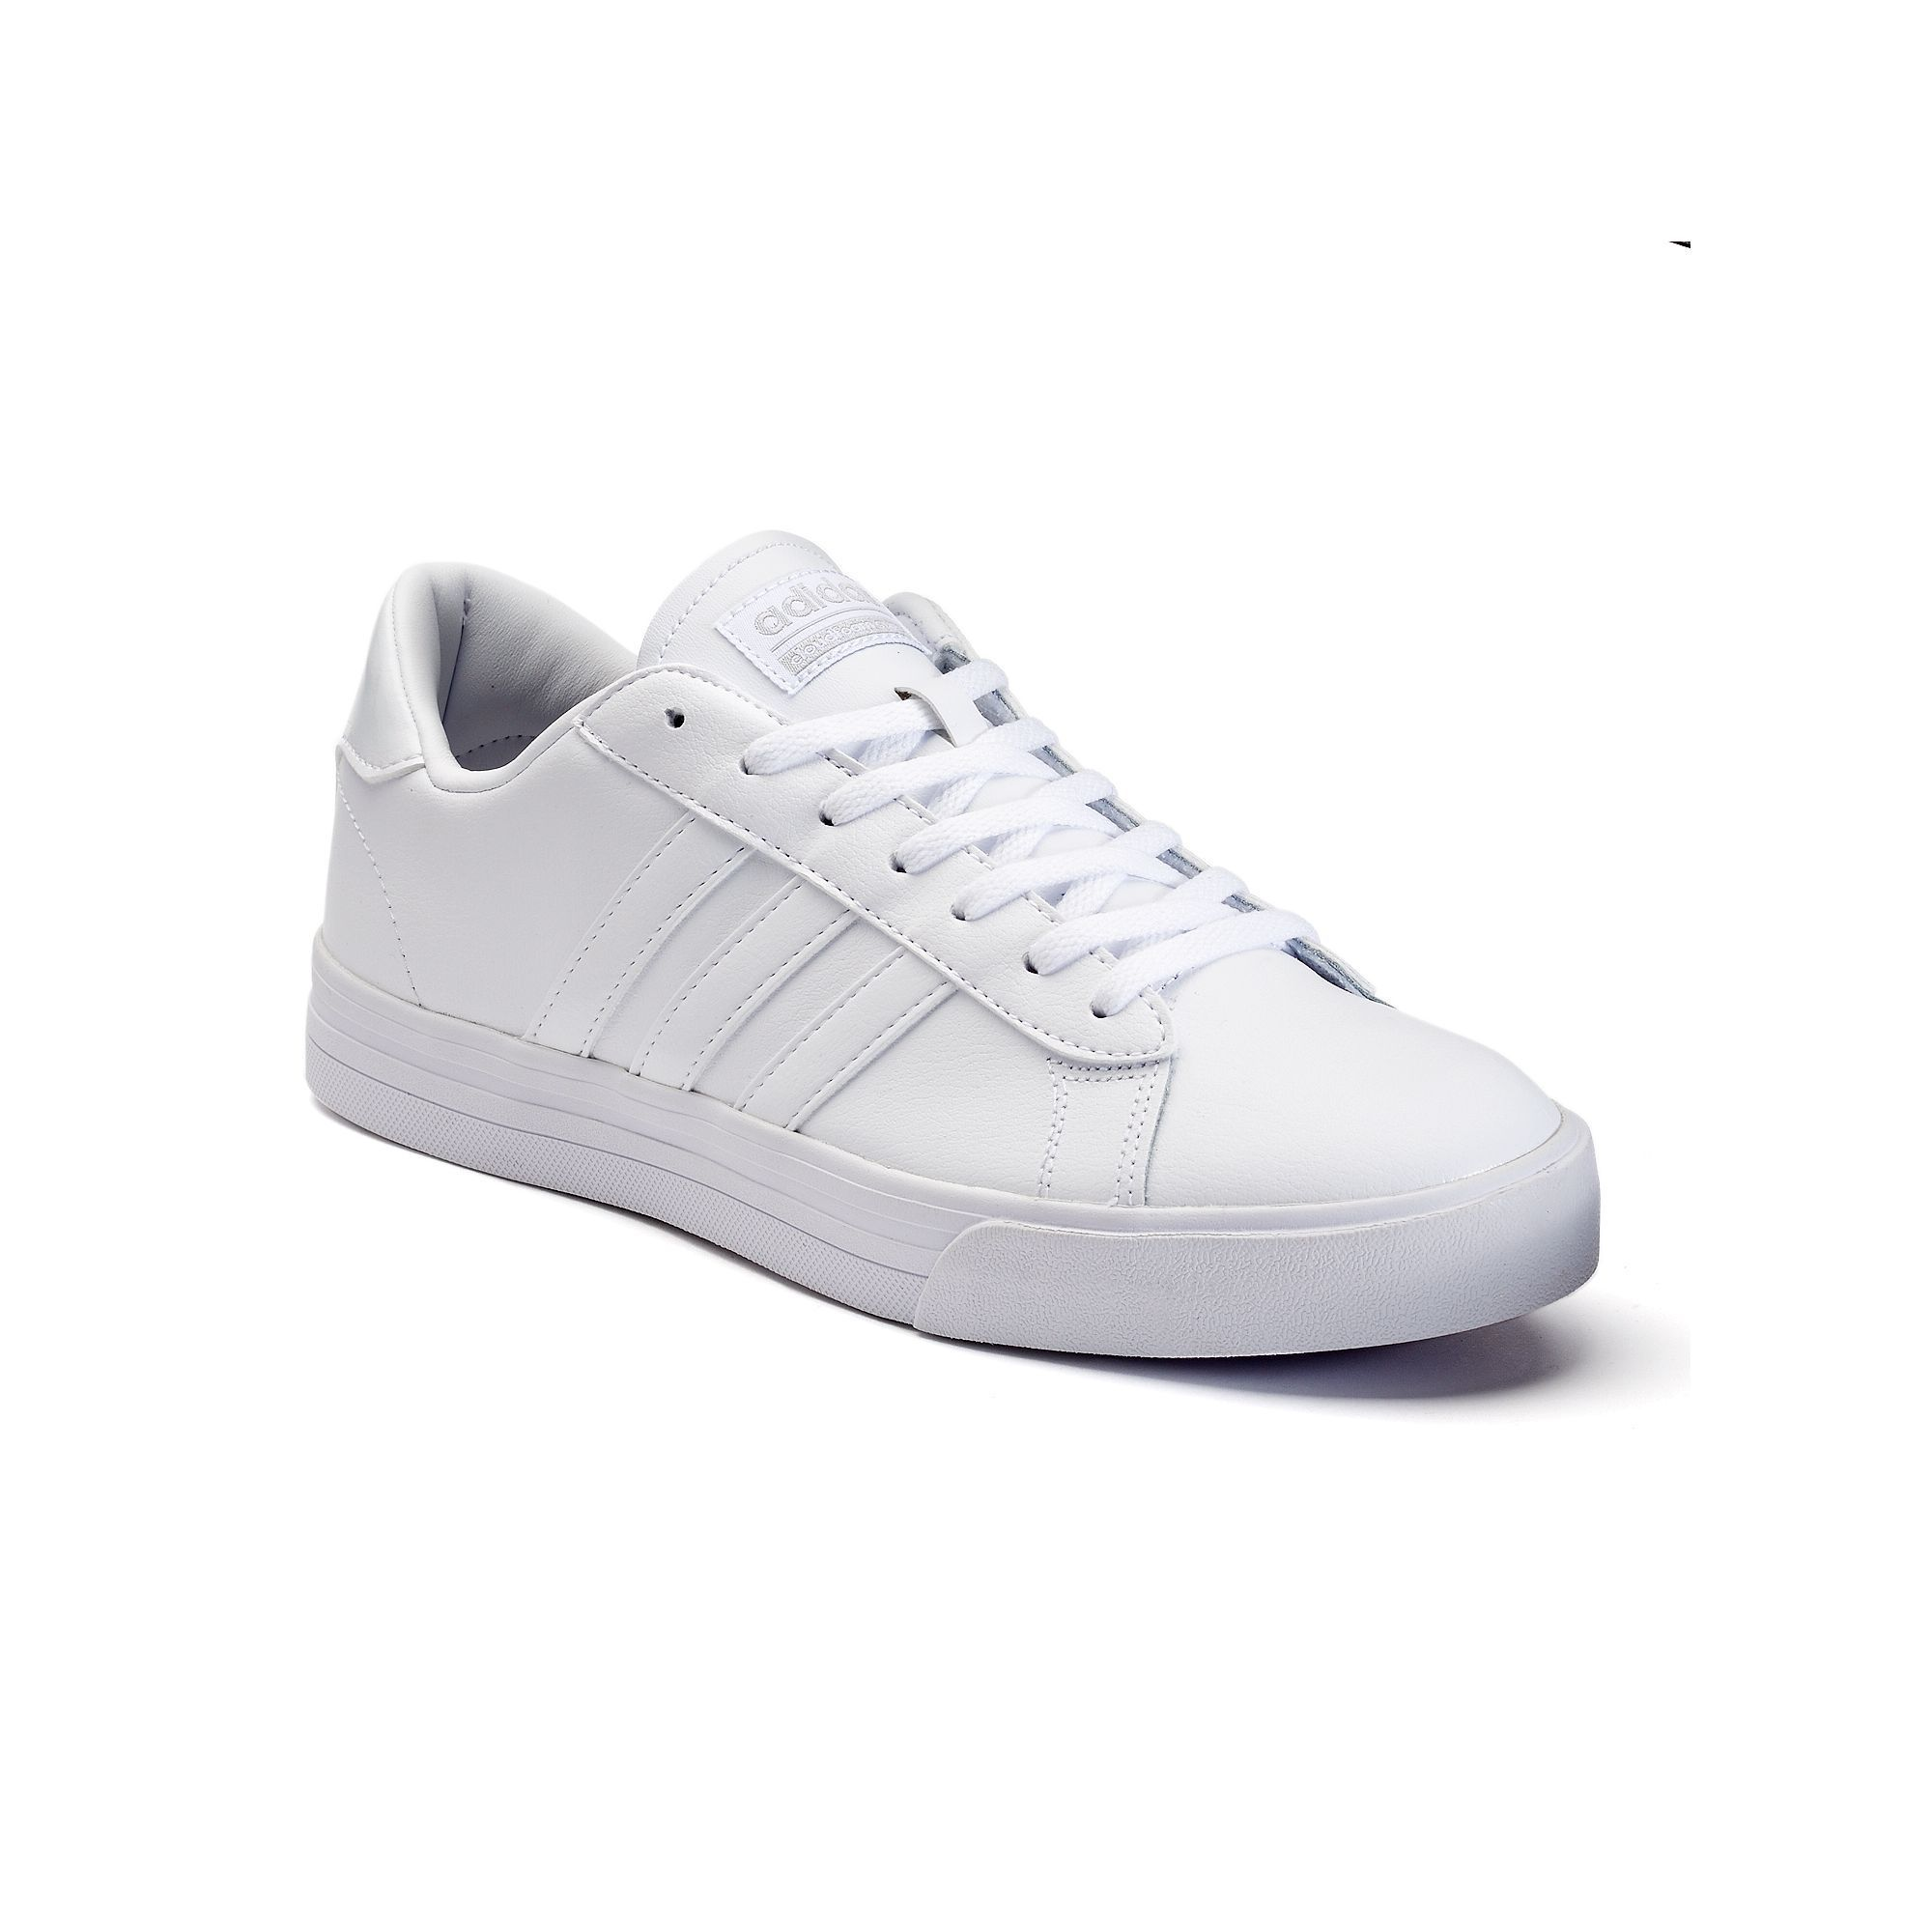 Adidas NEO Cloudfoam Super Daily Men\u0027s Leather Shoes, Size: 10.5, White